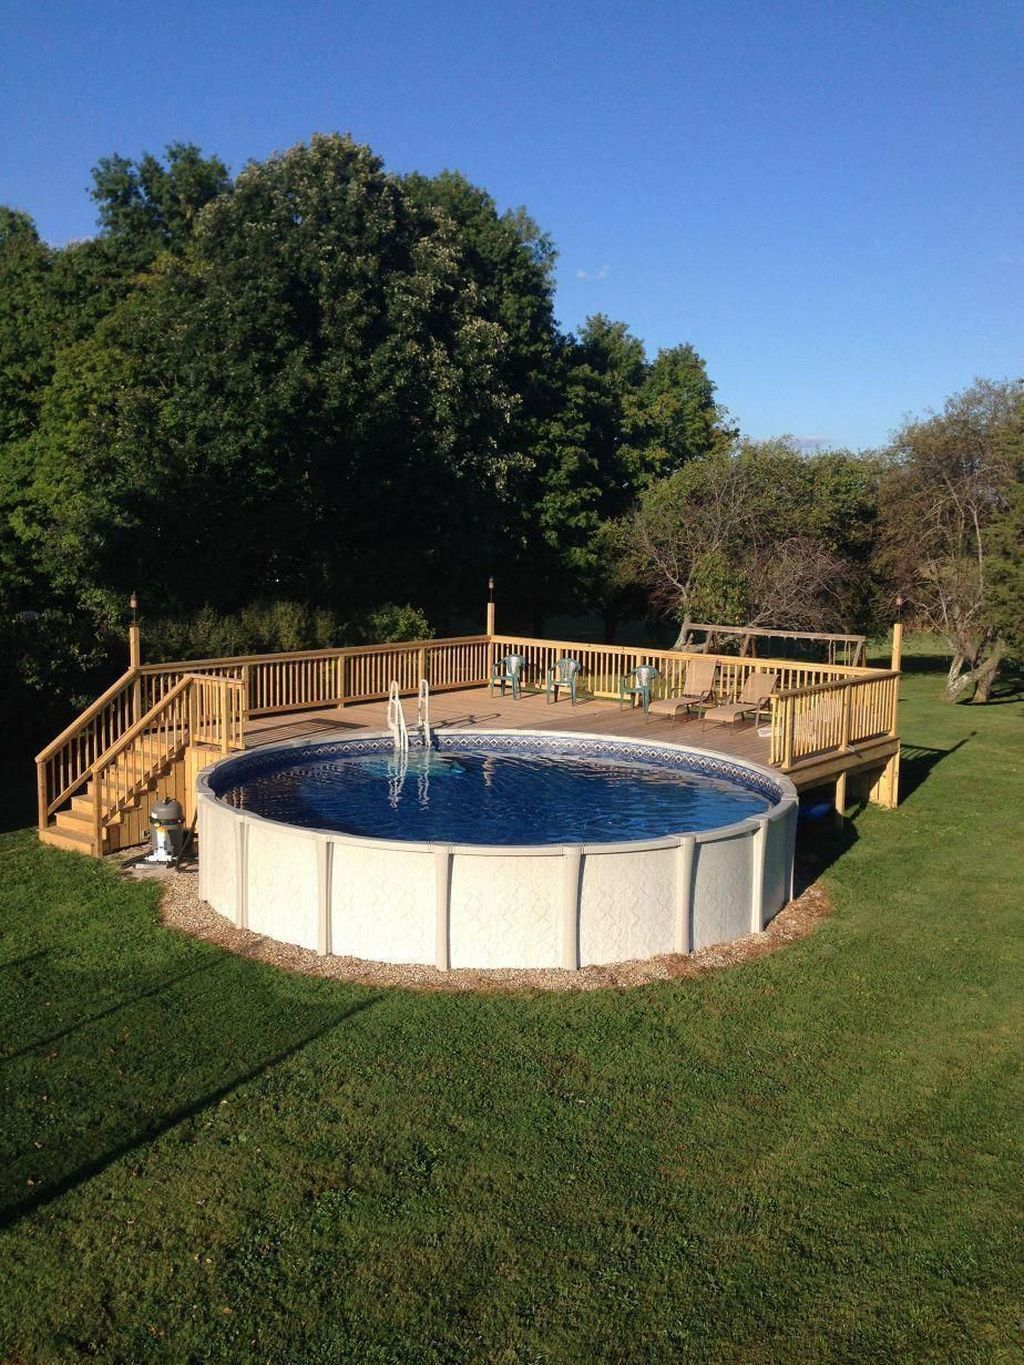 Photo of Stunning Ground Pool Design Ideas For Your Backyard